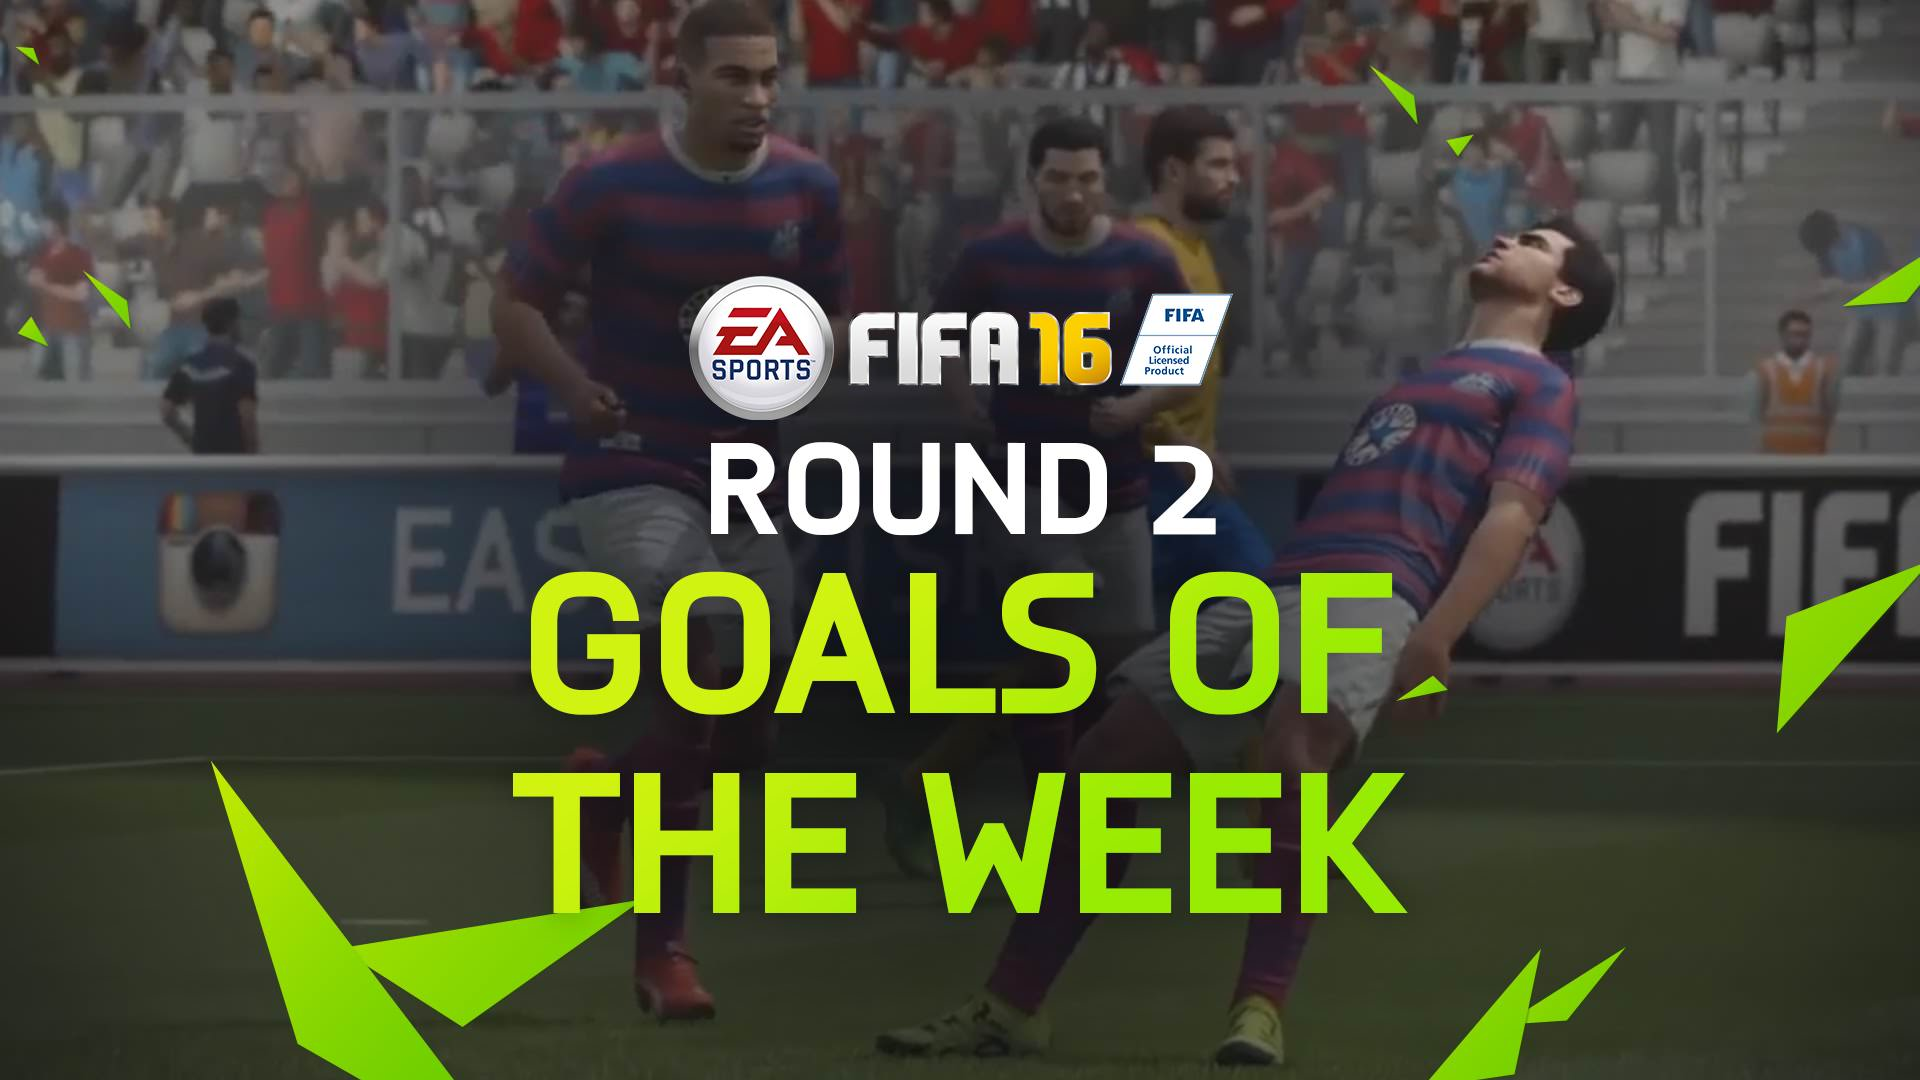 FIFA 16 Goals of the Week 2